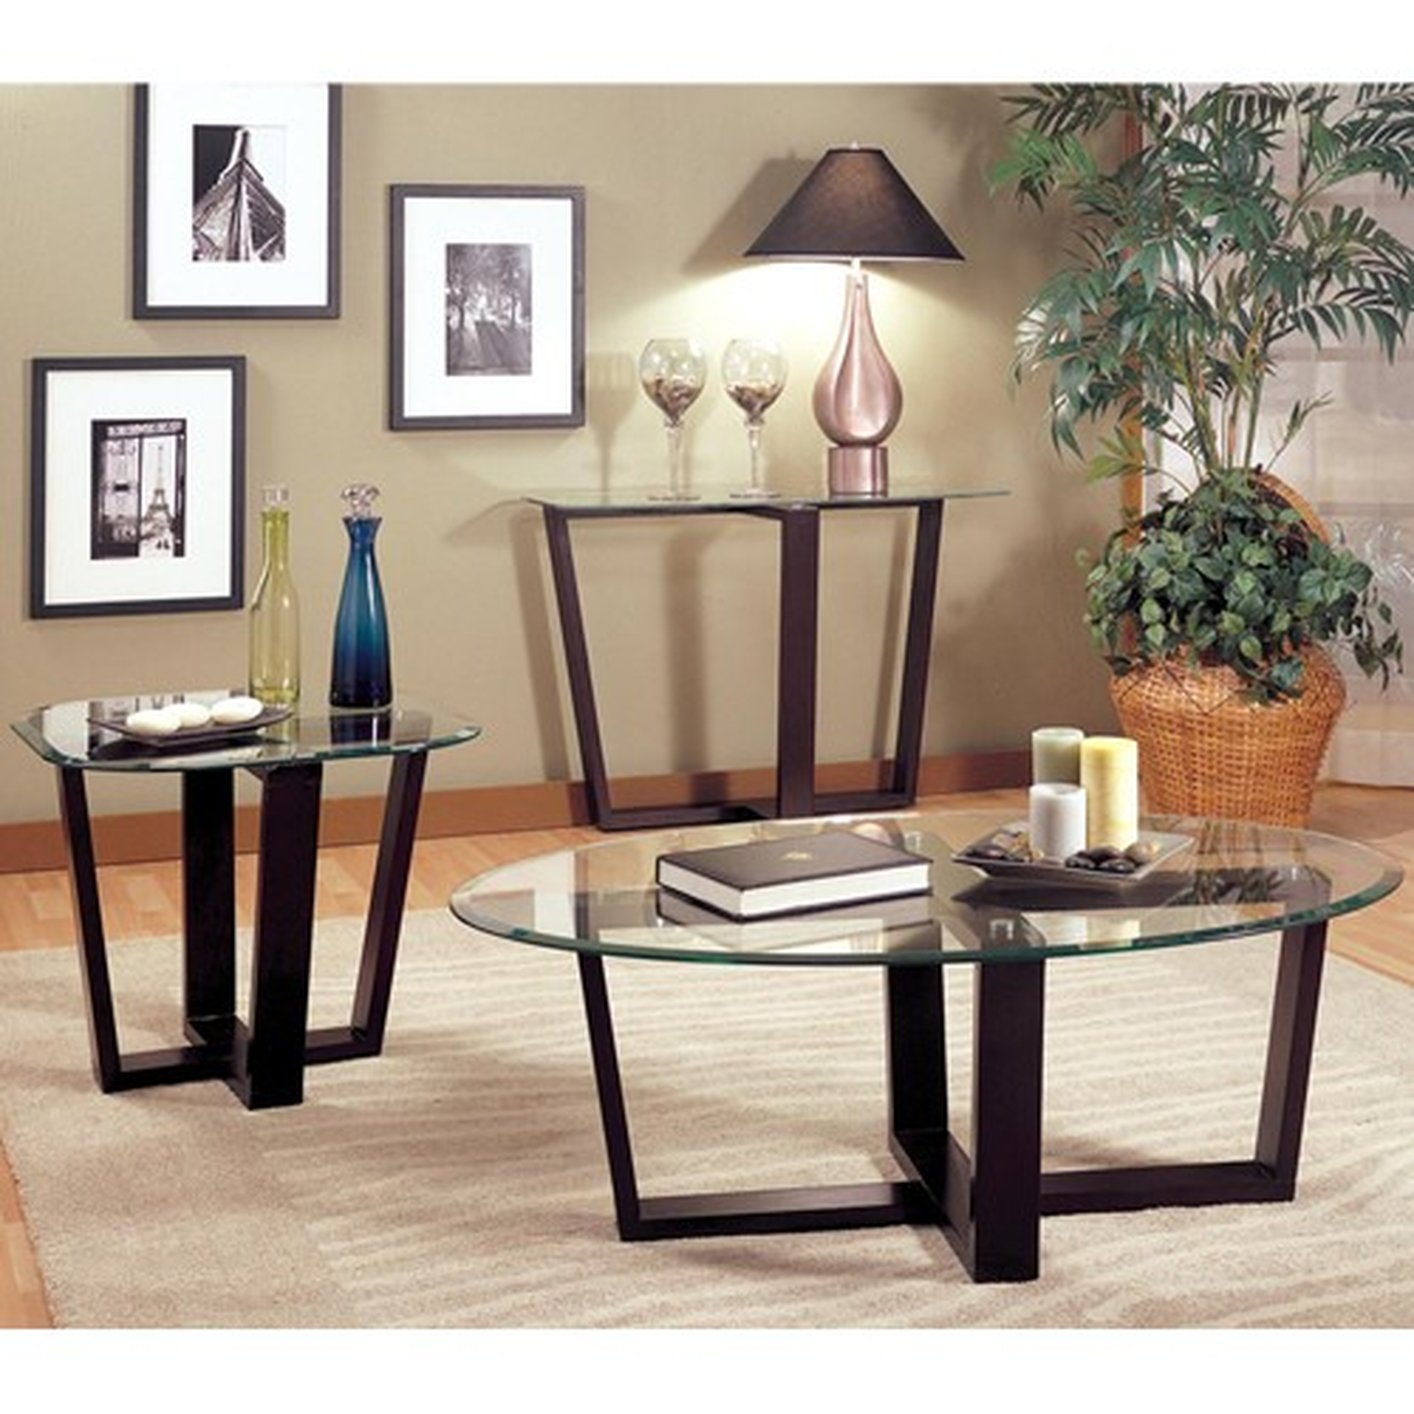 Alexis Black Glass Coffee Table Set : 3 piece black coffee table sets - Pezcame.Com